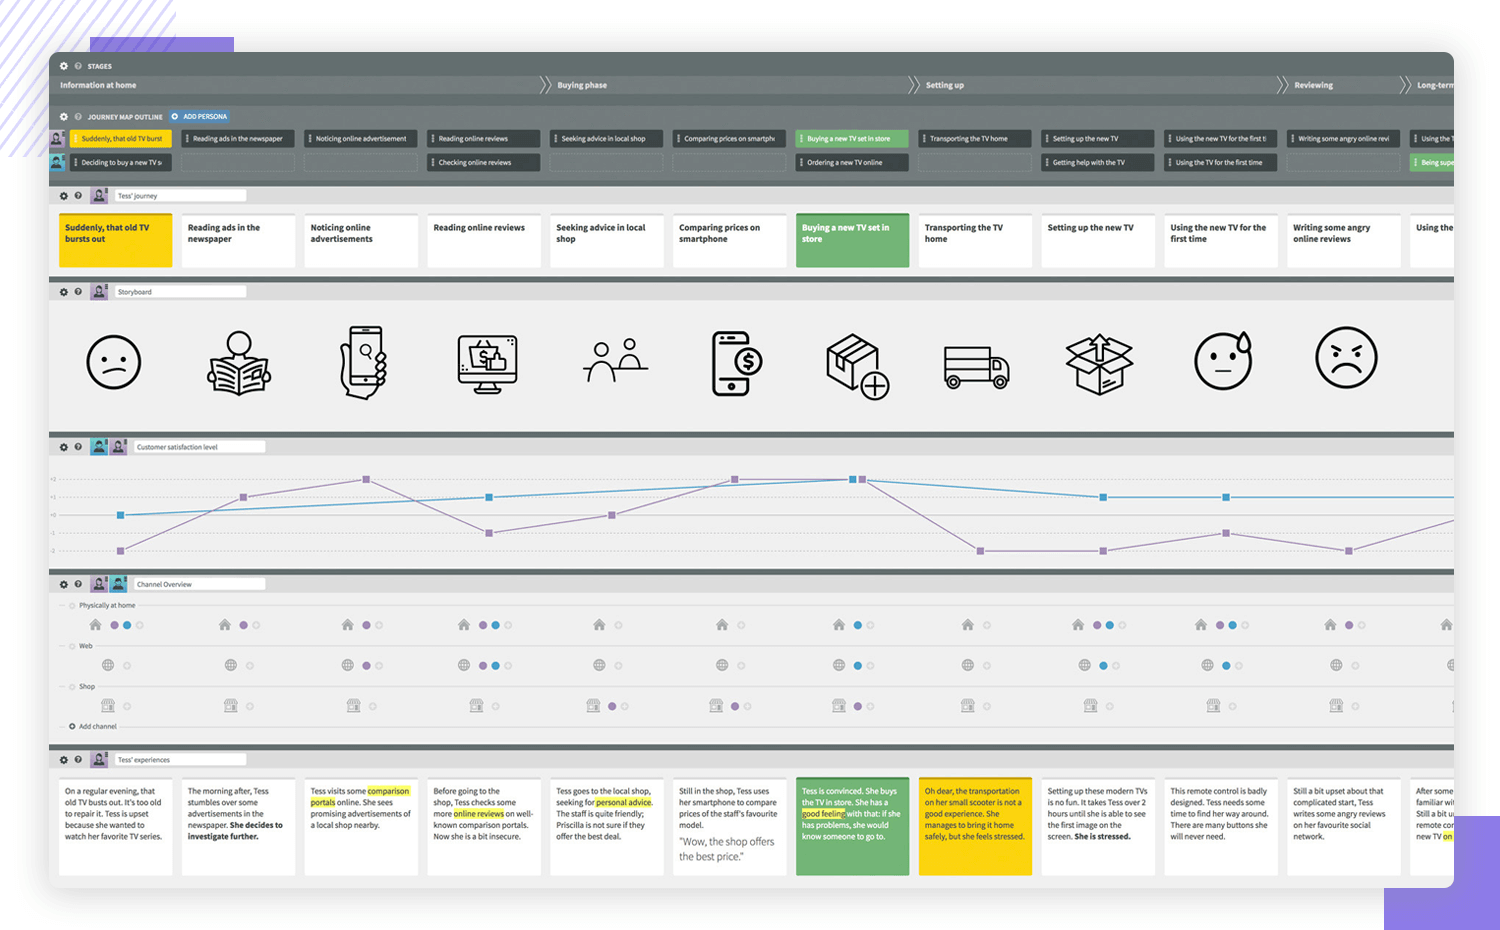 showing a user journey map to show how ux solves problems